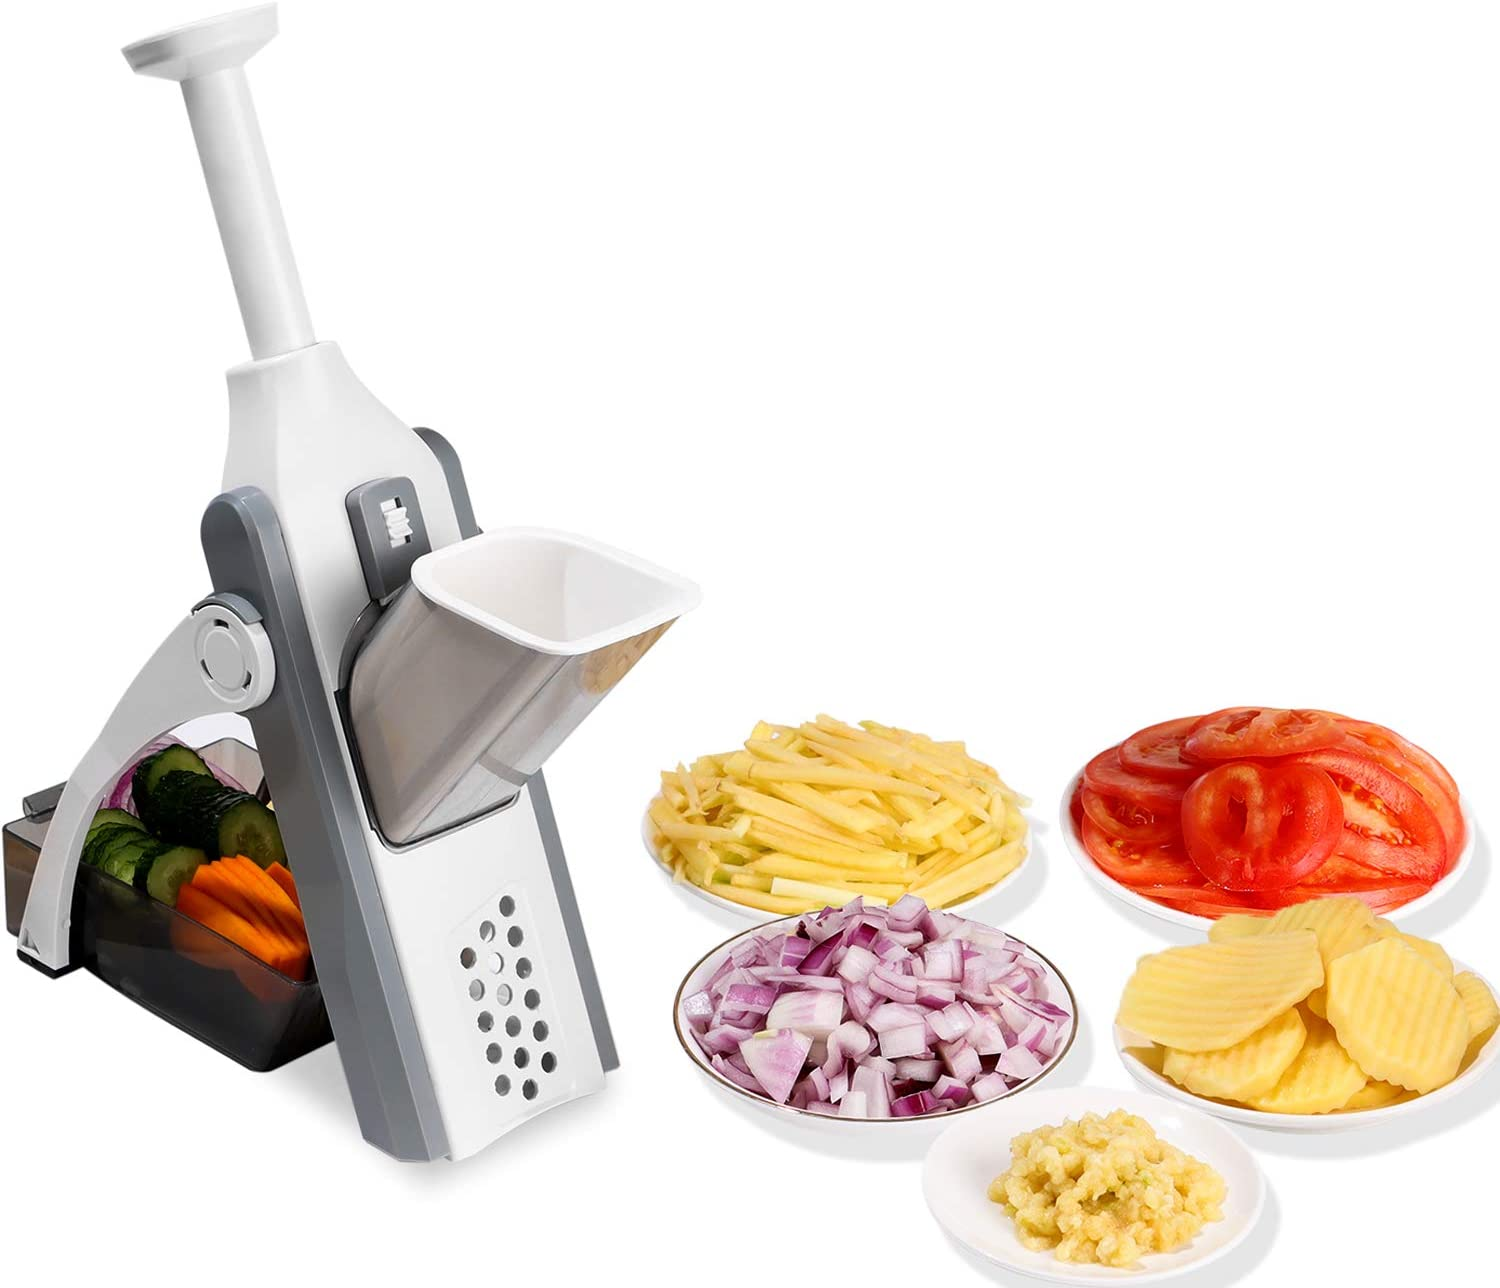 FYINTON Adjustable Slicer Safe Vegetable Cutter Kitchen Food Chopper,Dicer Fruit,French Fry Julinner,Slices,Dices,Grinded Garlic Quick Easy Meal Preparation & Durable for Home Kitchen